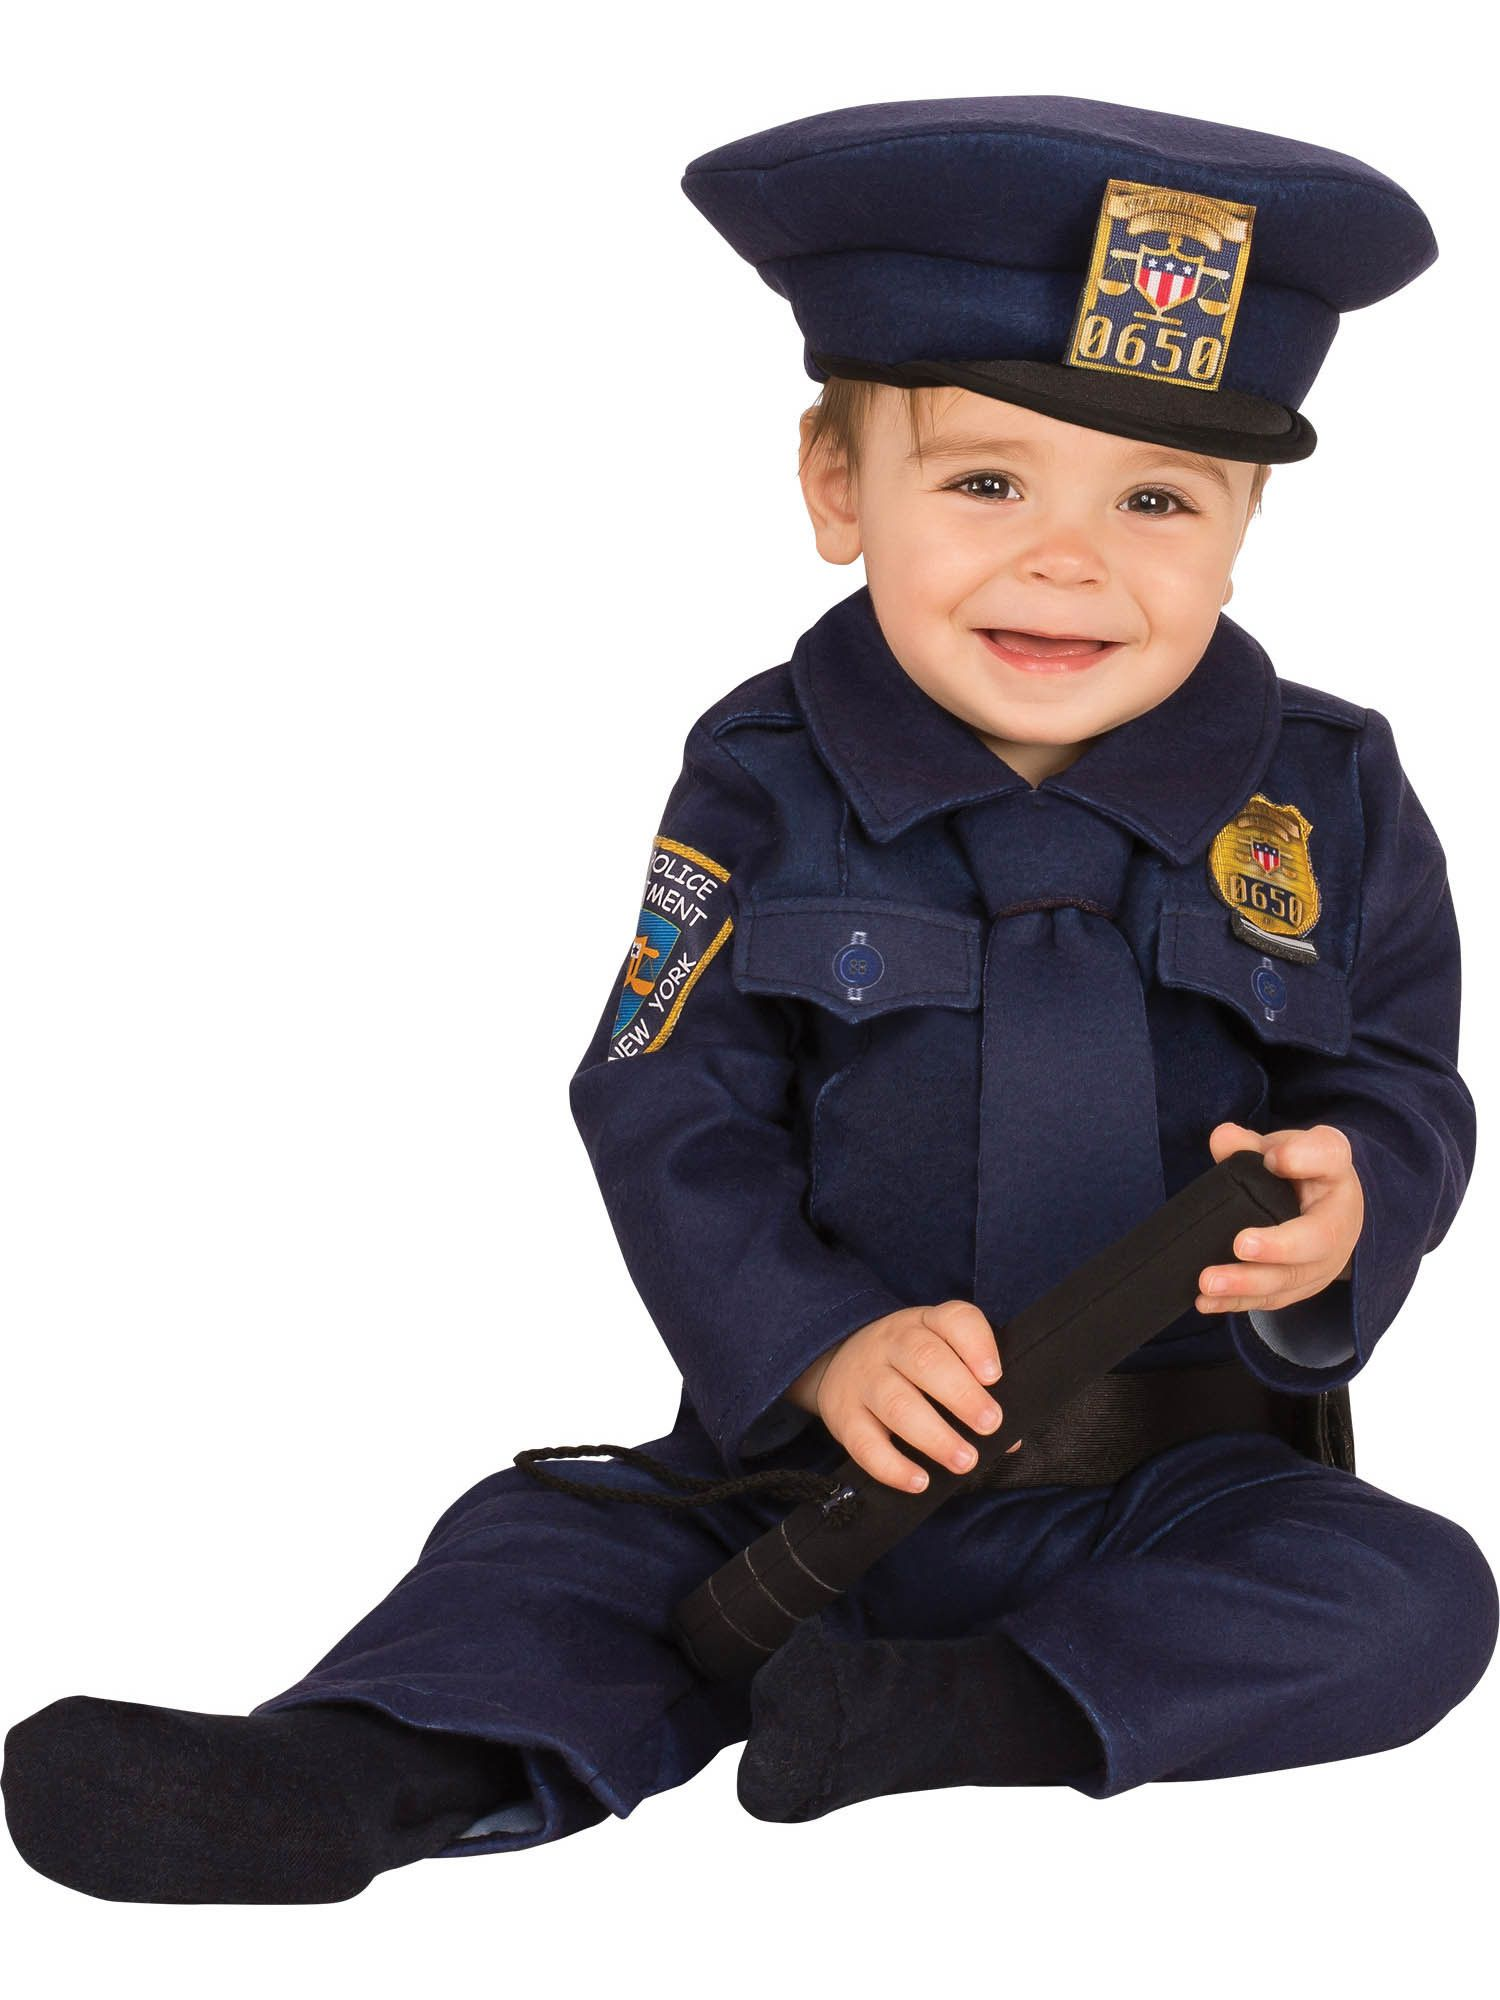 police baby/toddler costume - baby/toddler costumes for 2018